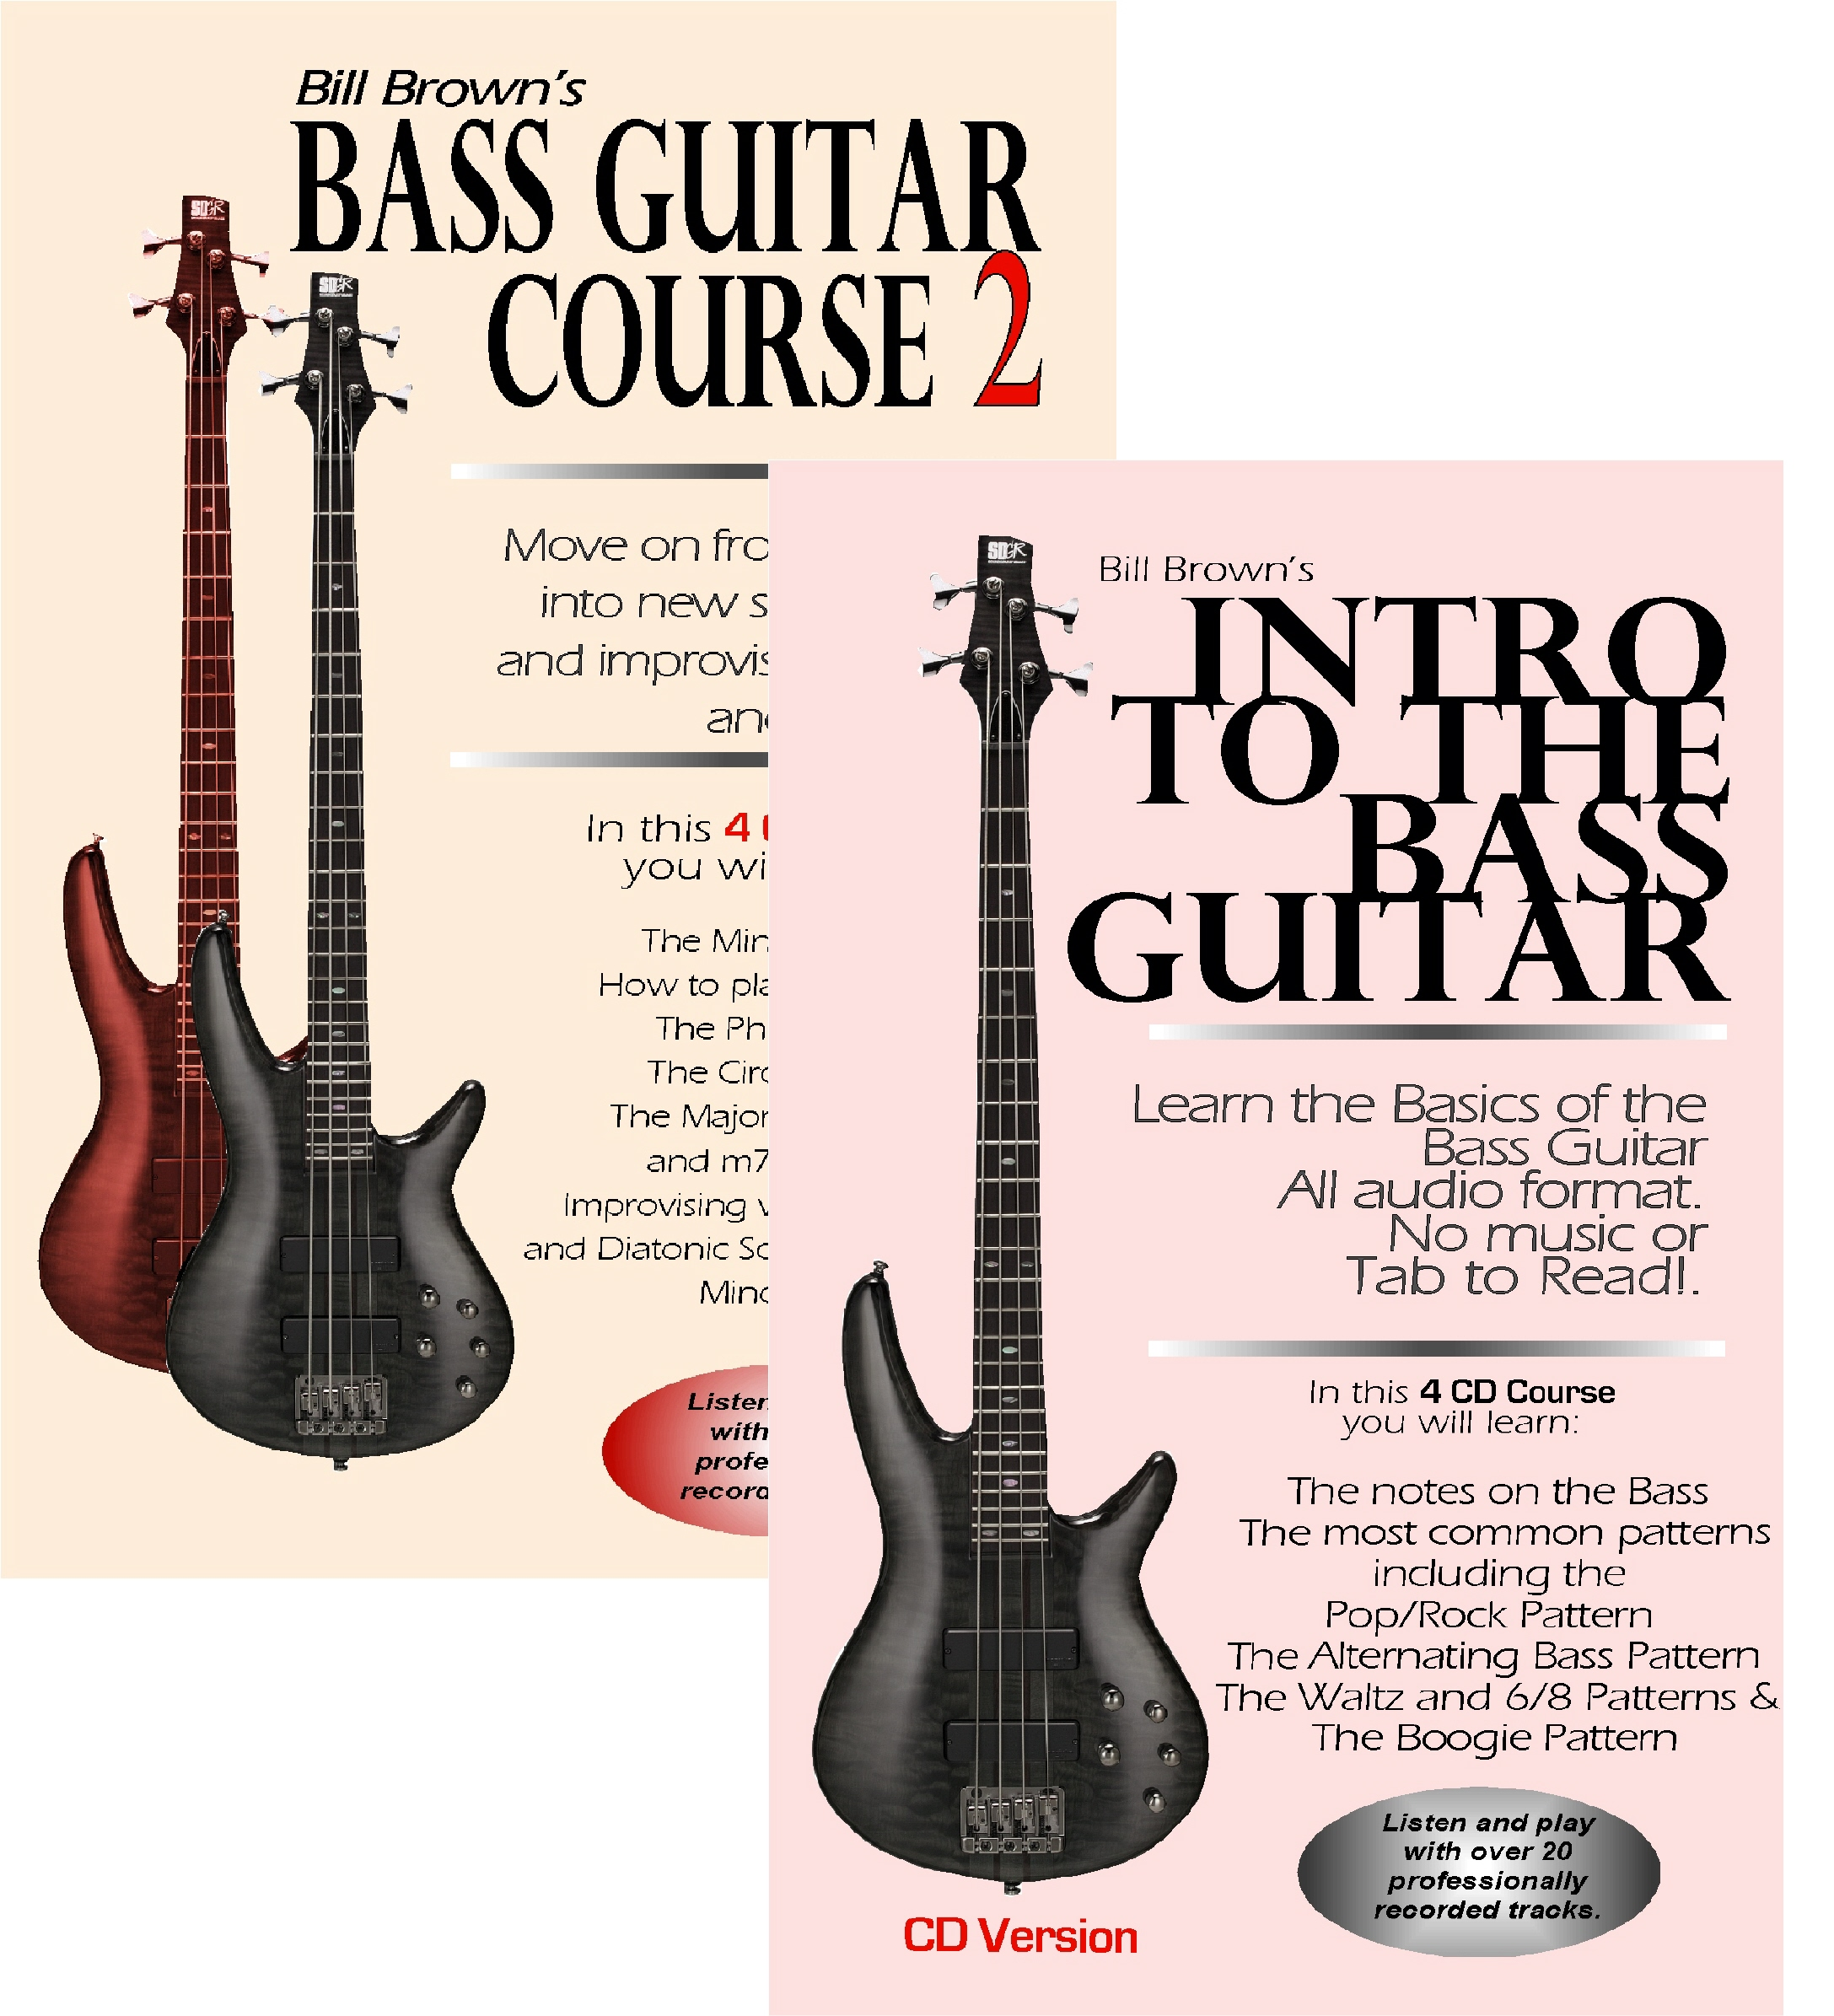 Intro to the Bass Guitar and Bass Course 2